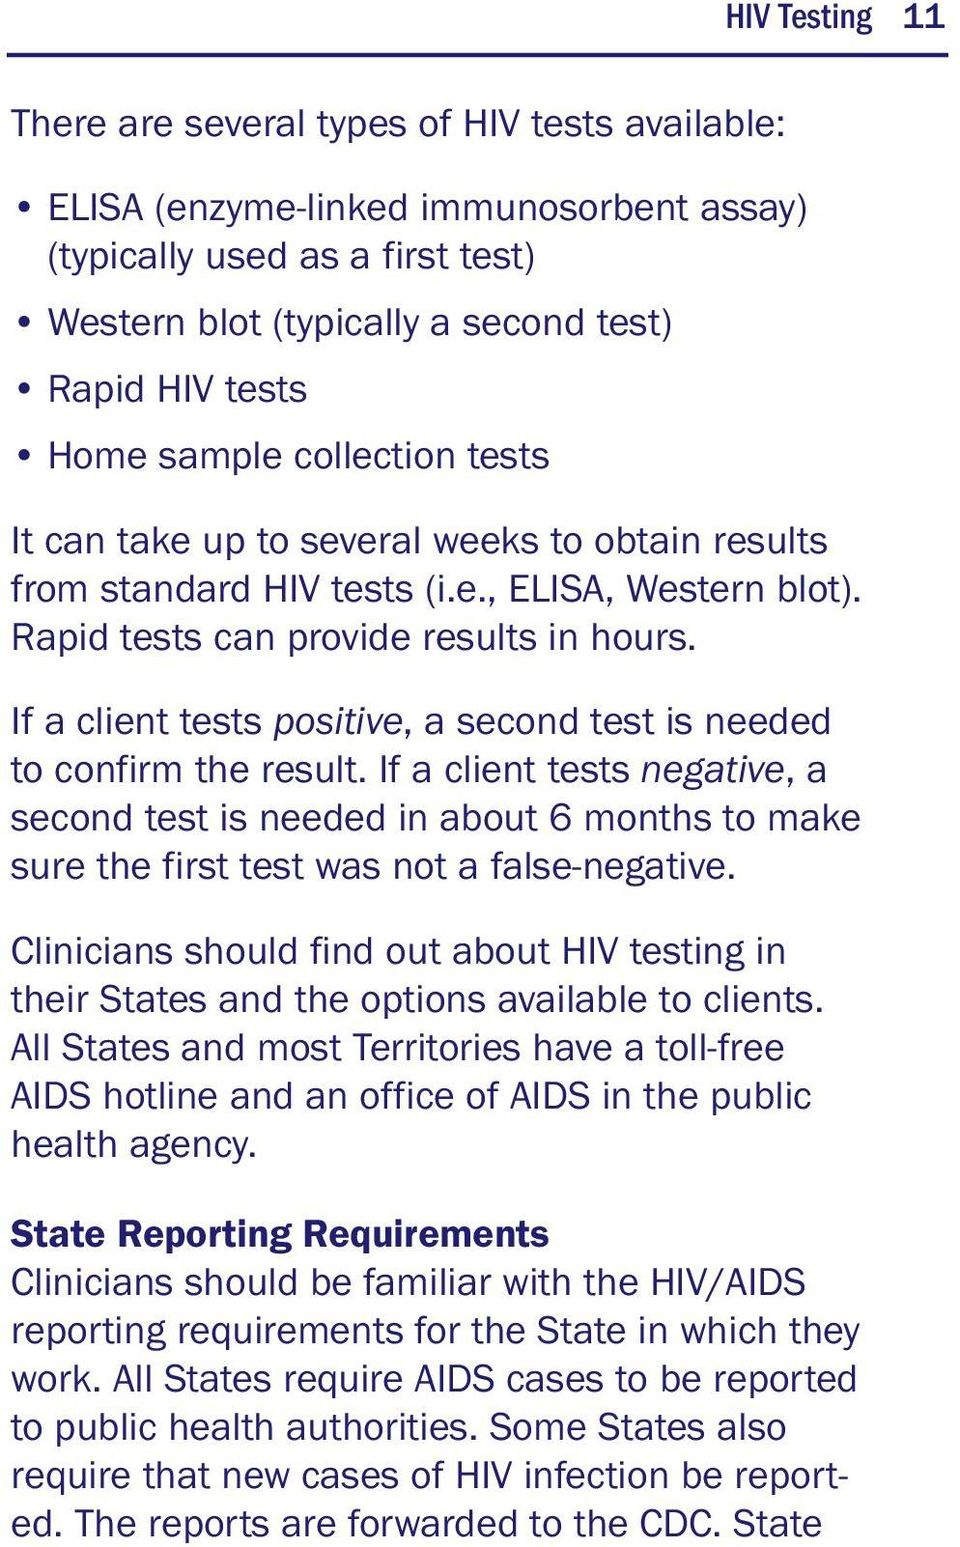 If a client tests positive, a second test is needed to confirm the result. If a client tests negative, a second test is needed in about 6 months to make sure the first test was not a false-negative.